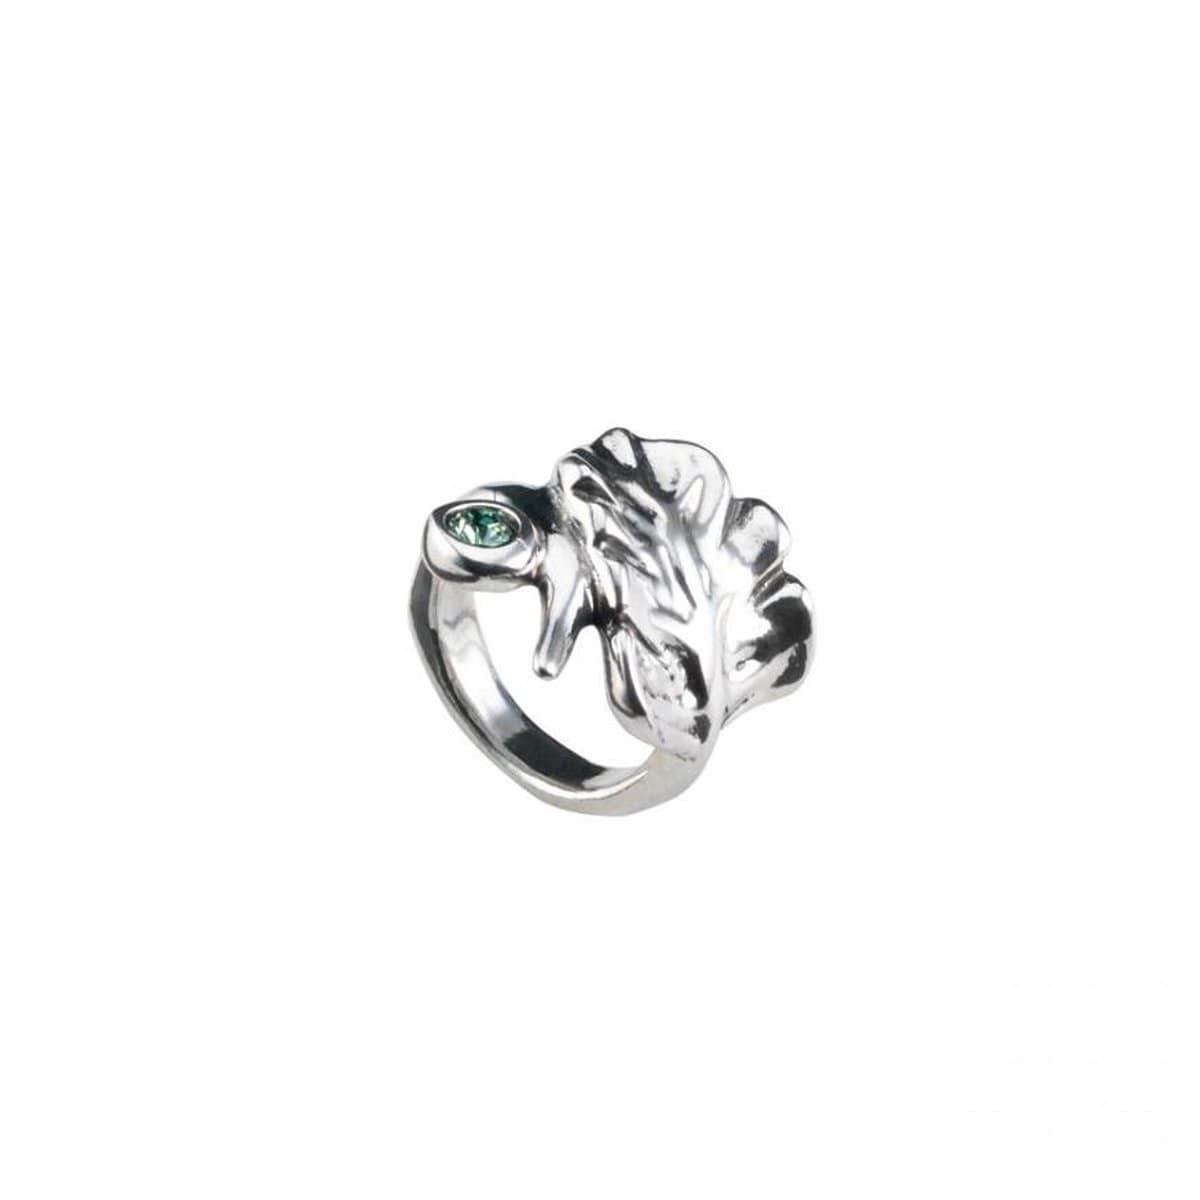 Leaves Ring - ANI0545VRDMTL-UNO de 50-Renee Taylor Gallery